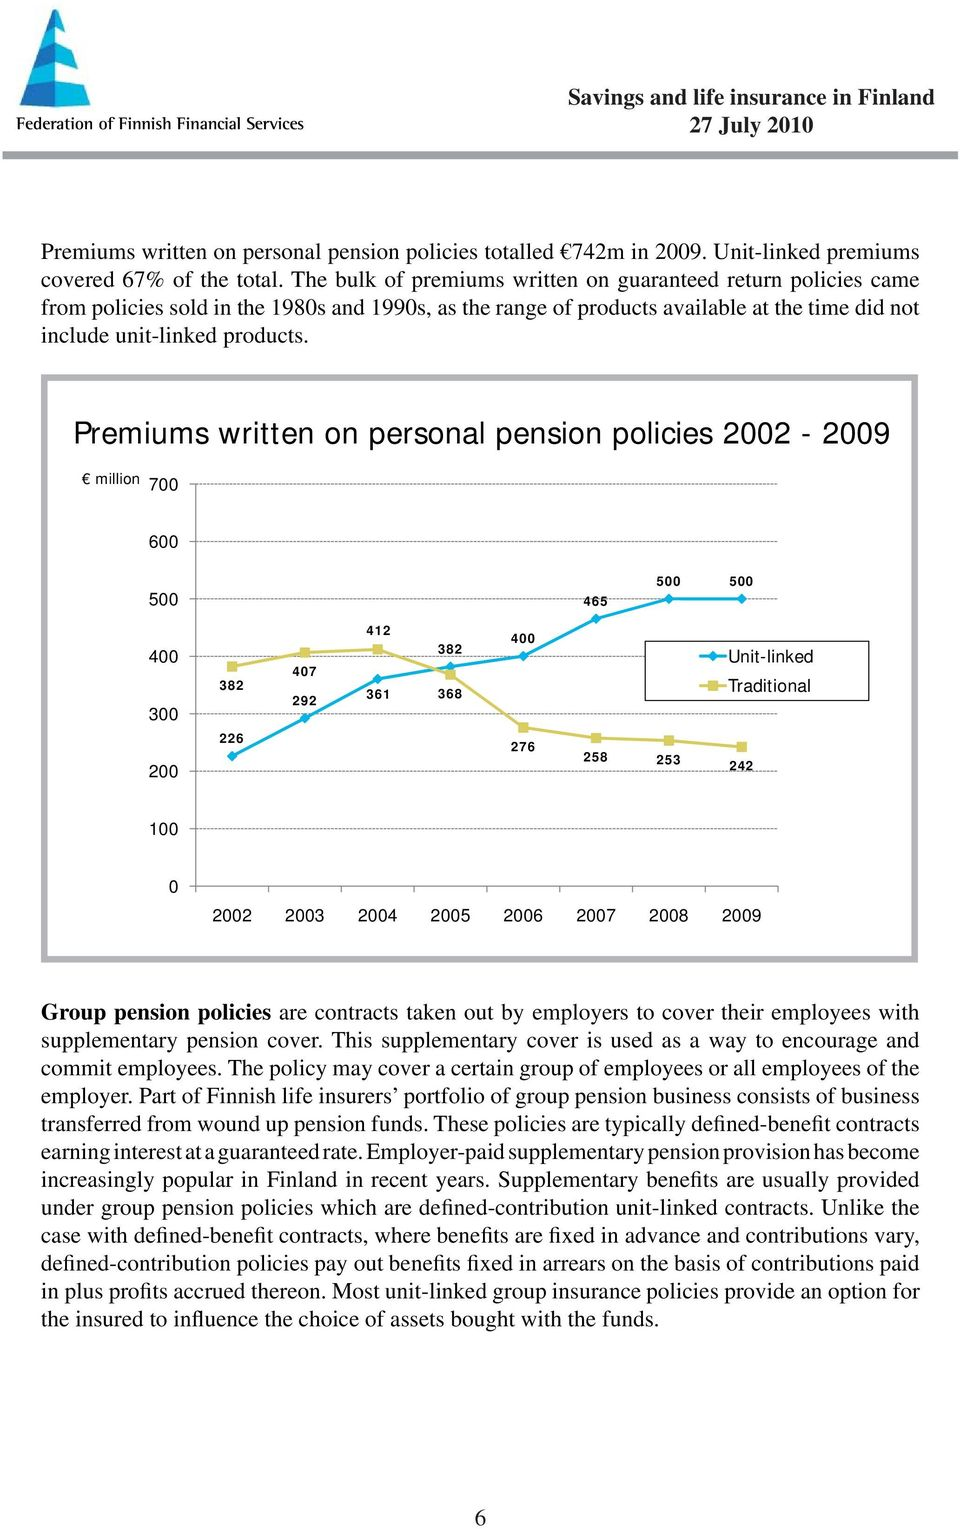 Premiums written on personal pension policies i 2002-2009 million 700 600 500 465 500 500 400 300 200 382 226 407 292 412 361 382 368 400 276 258 253 Unit-linked Traditional 242 100 0 2002 2003 2004